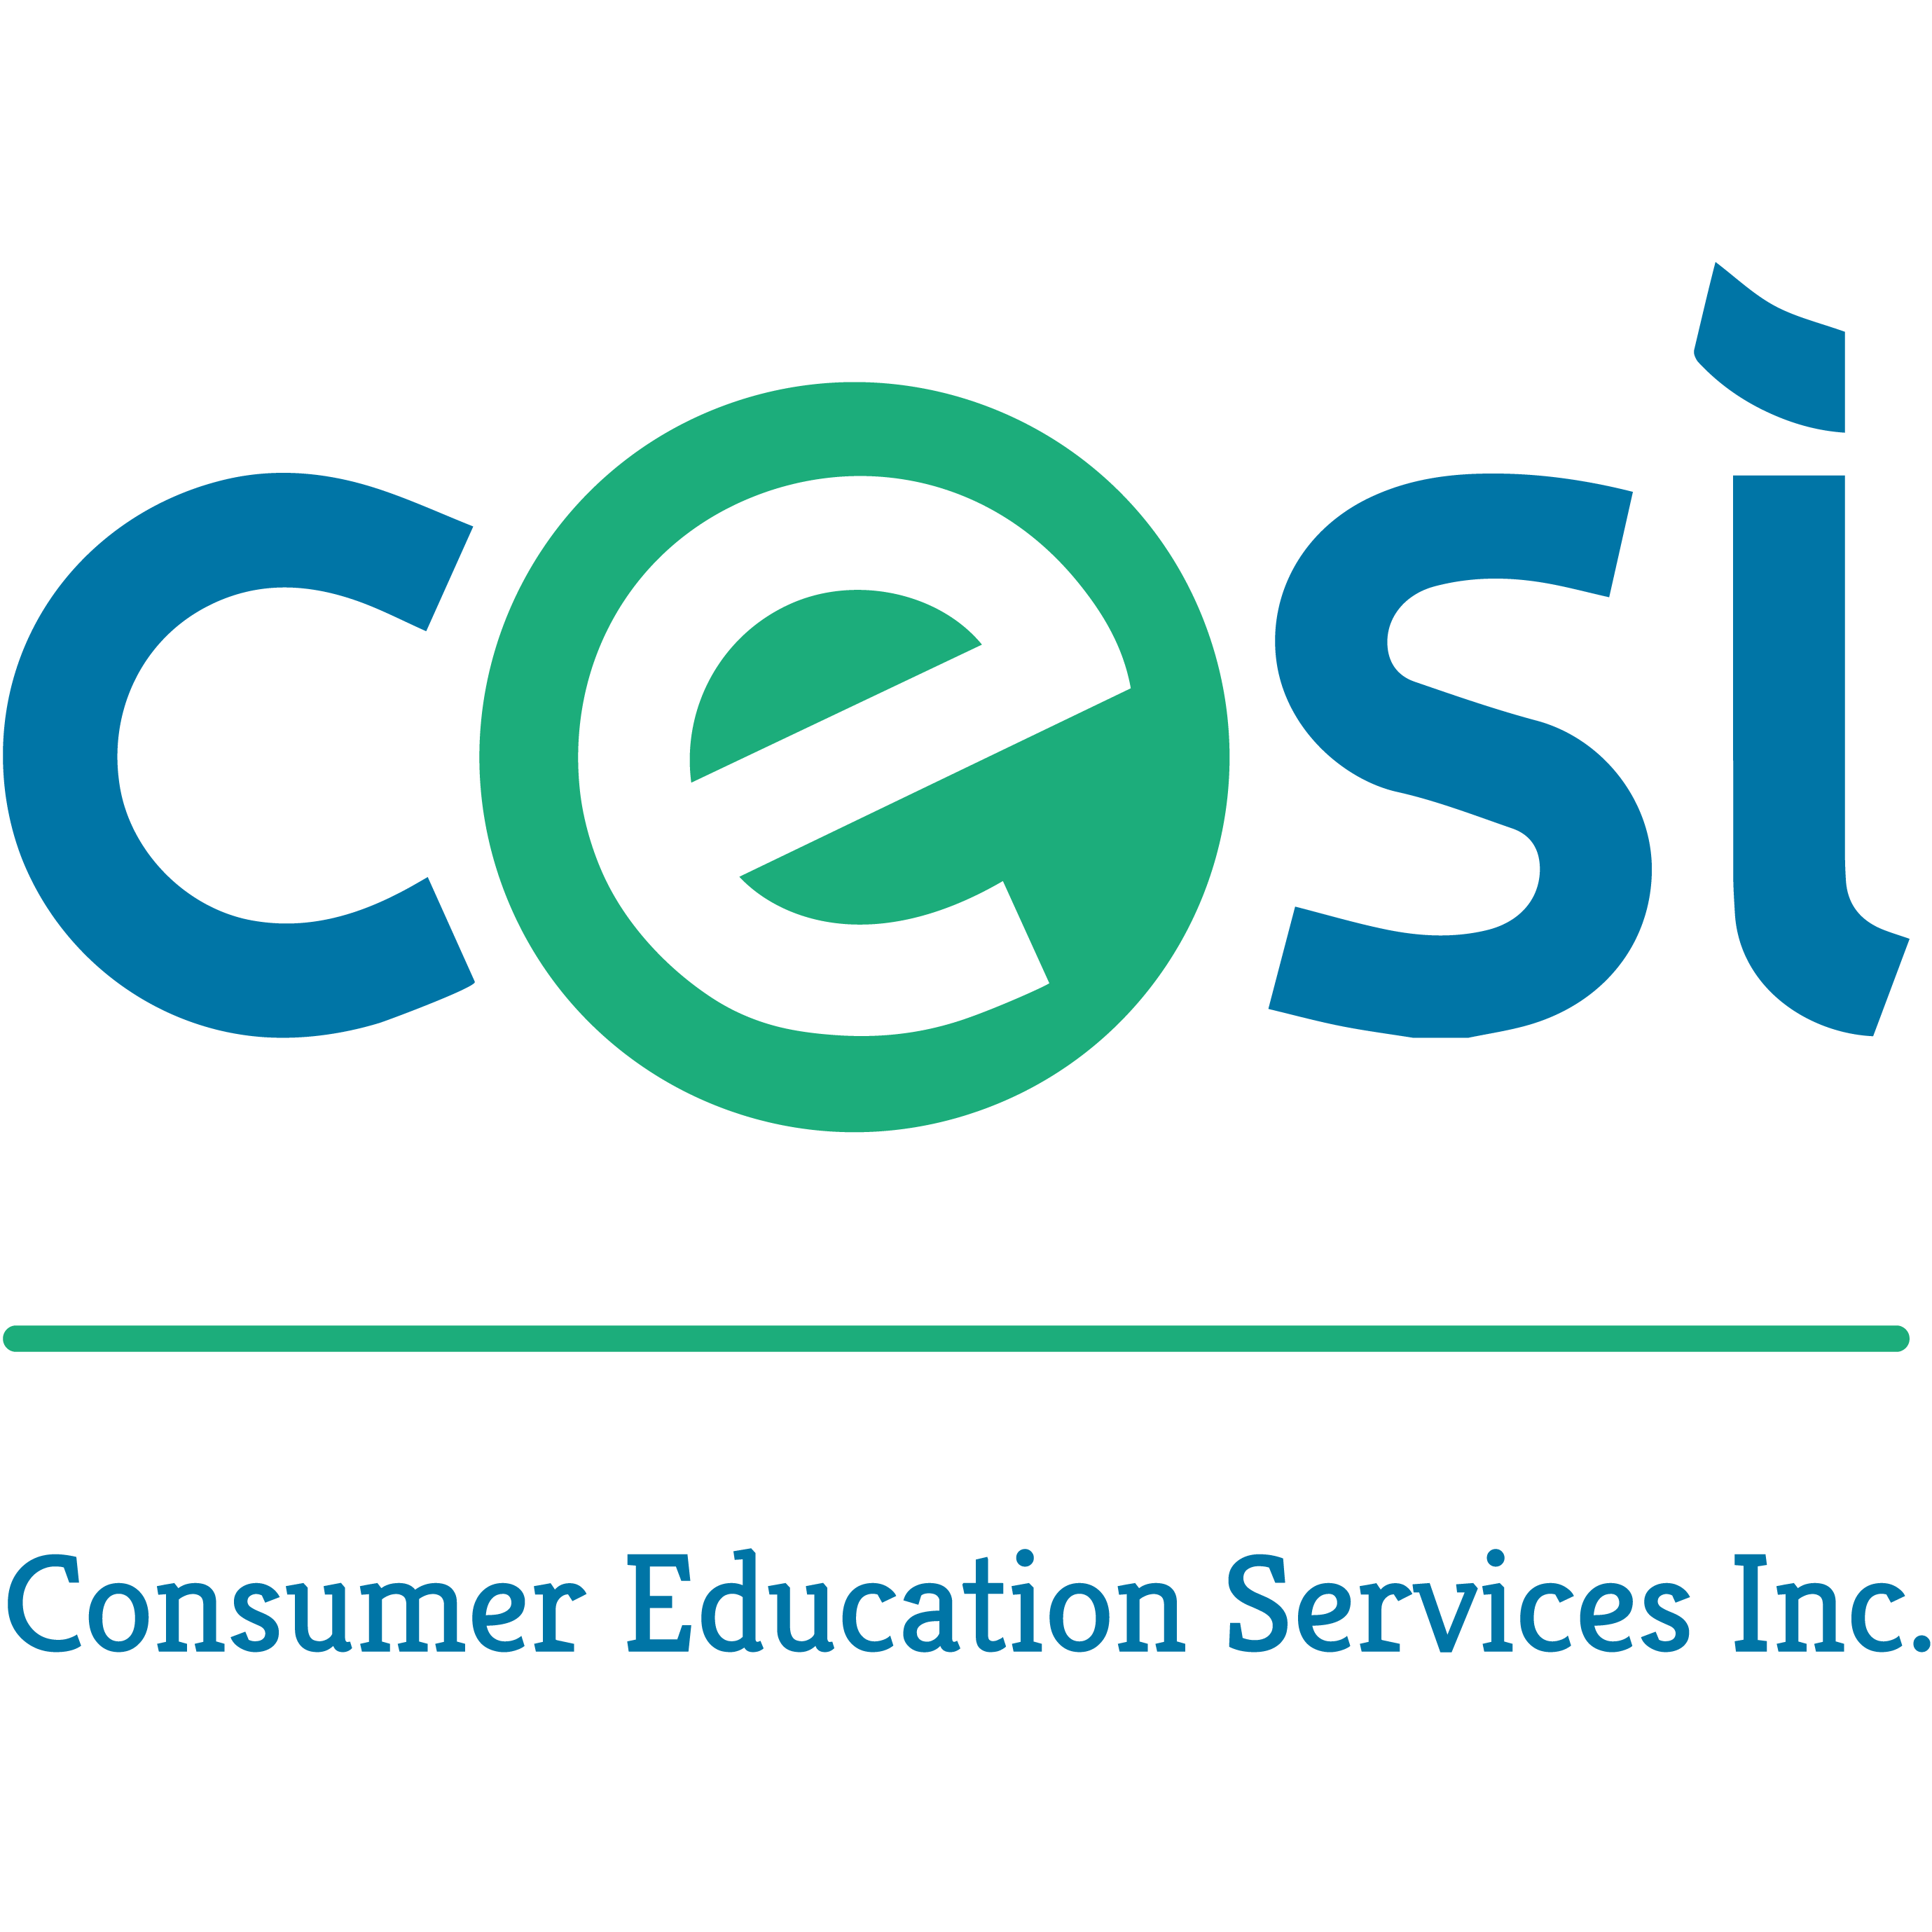 Consumer Education Services Inc. (CESI)